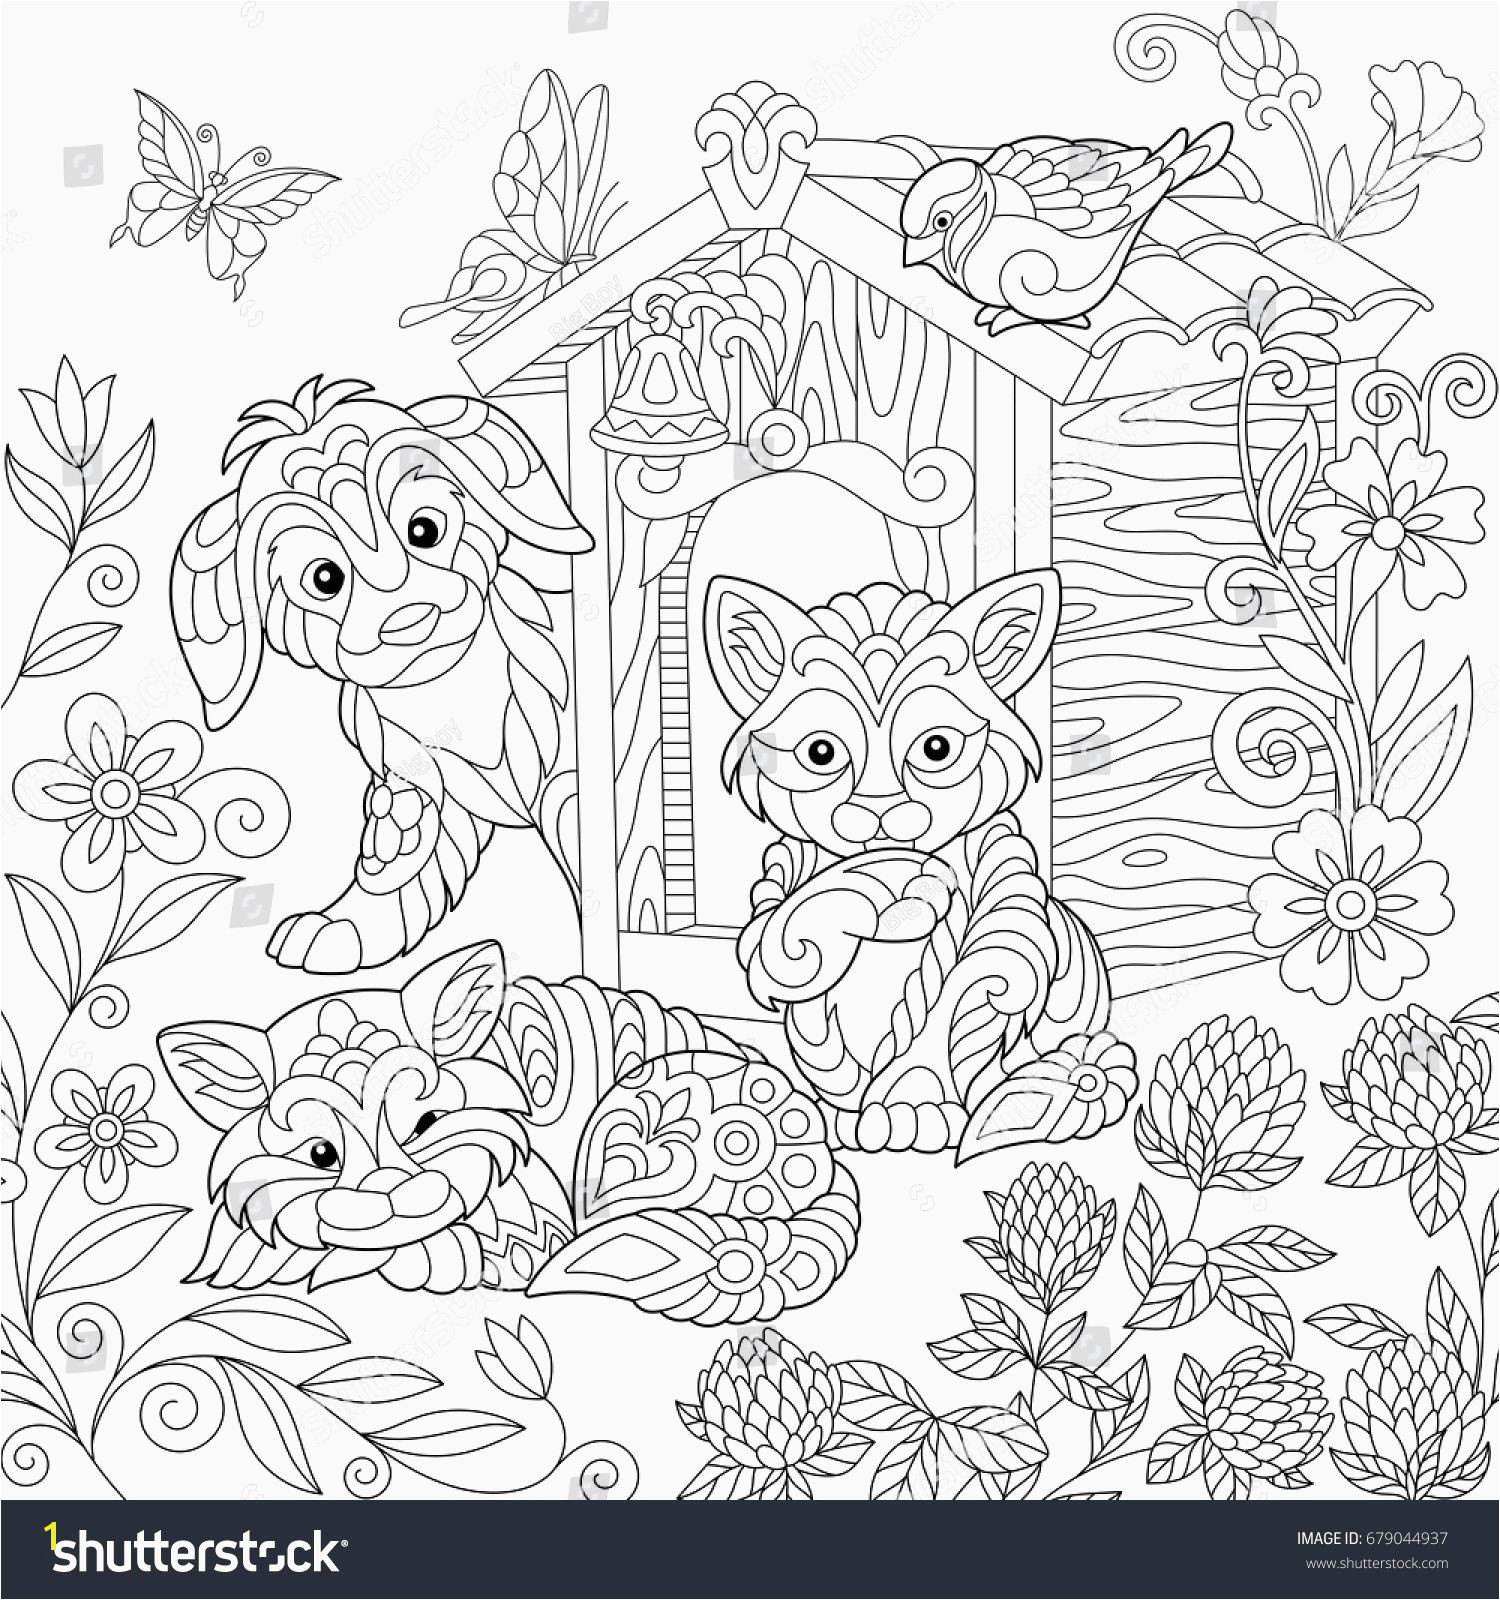 Disney Halloween Coloring Pages Luxury Happy Halloween Coloring Pages New Best Od Dog Coloring Pages Free